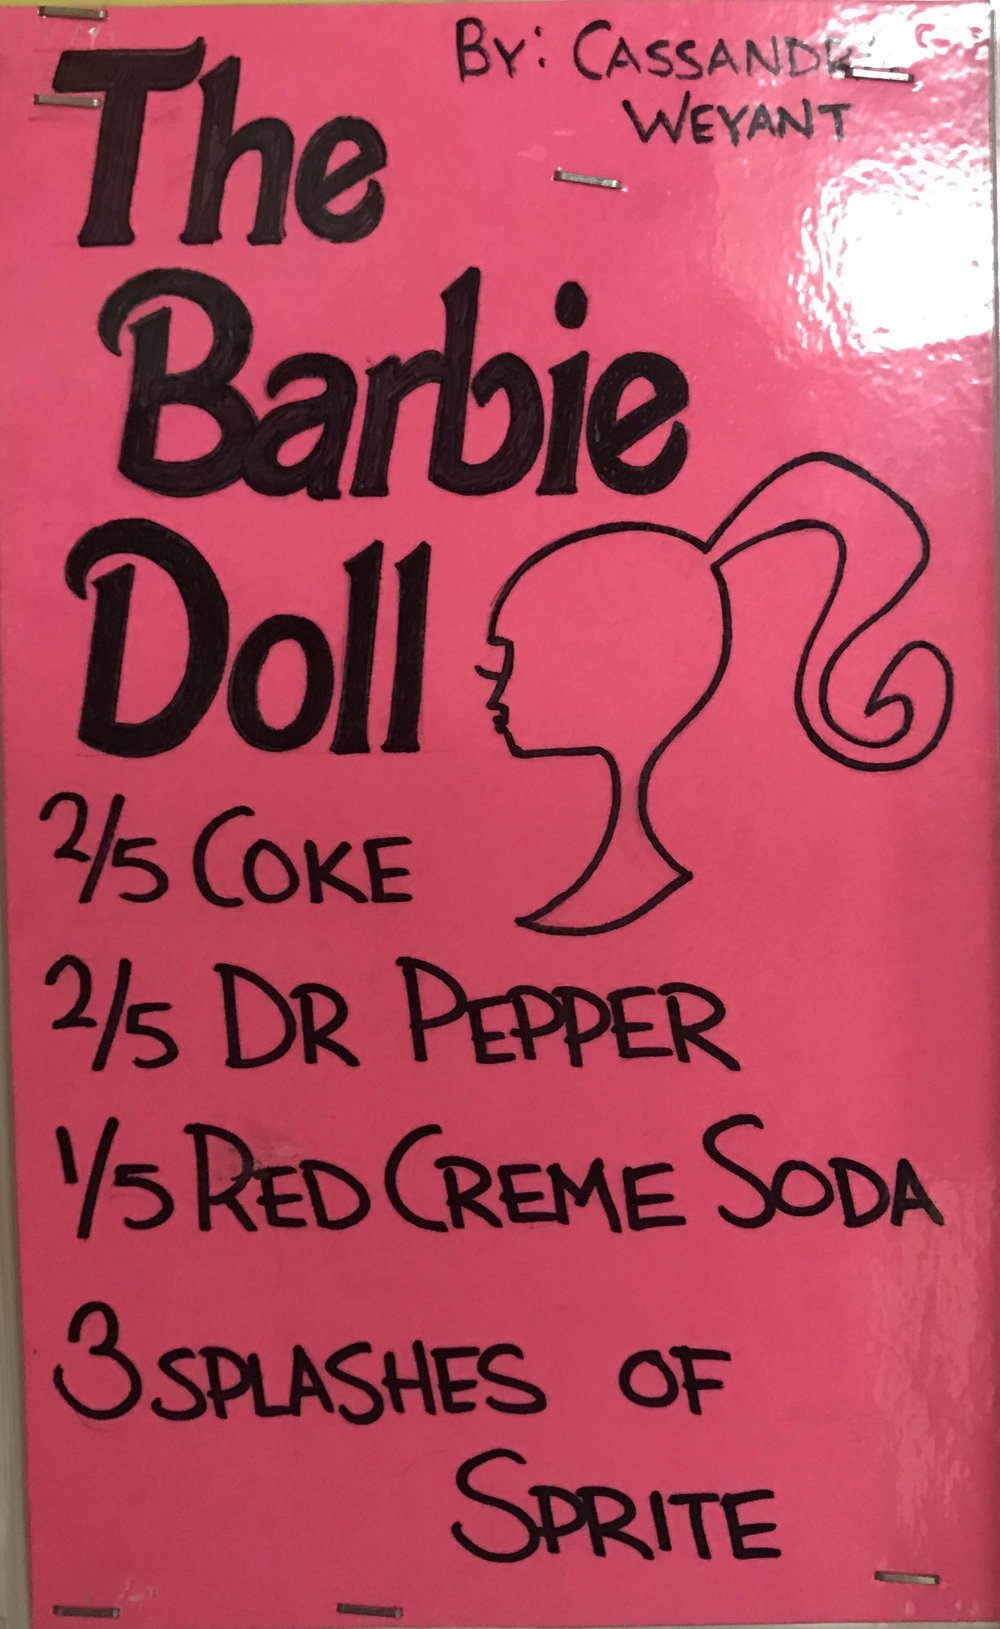 The Barbie Doll.JPG